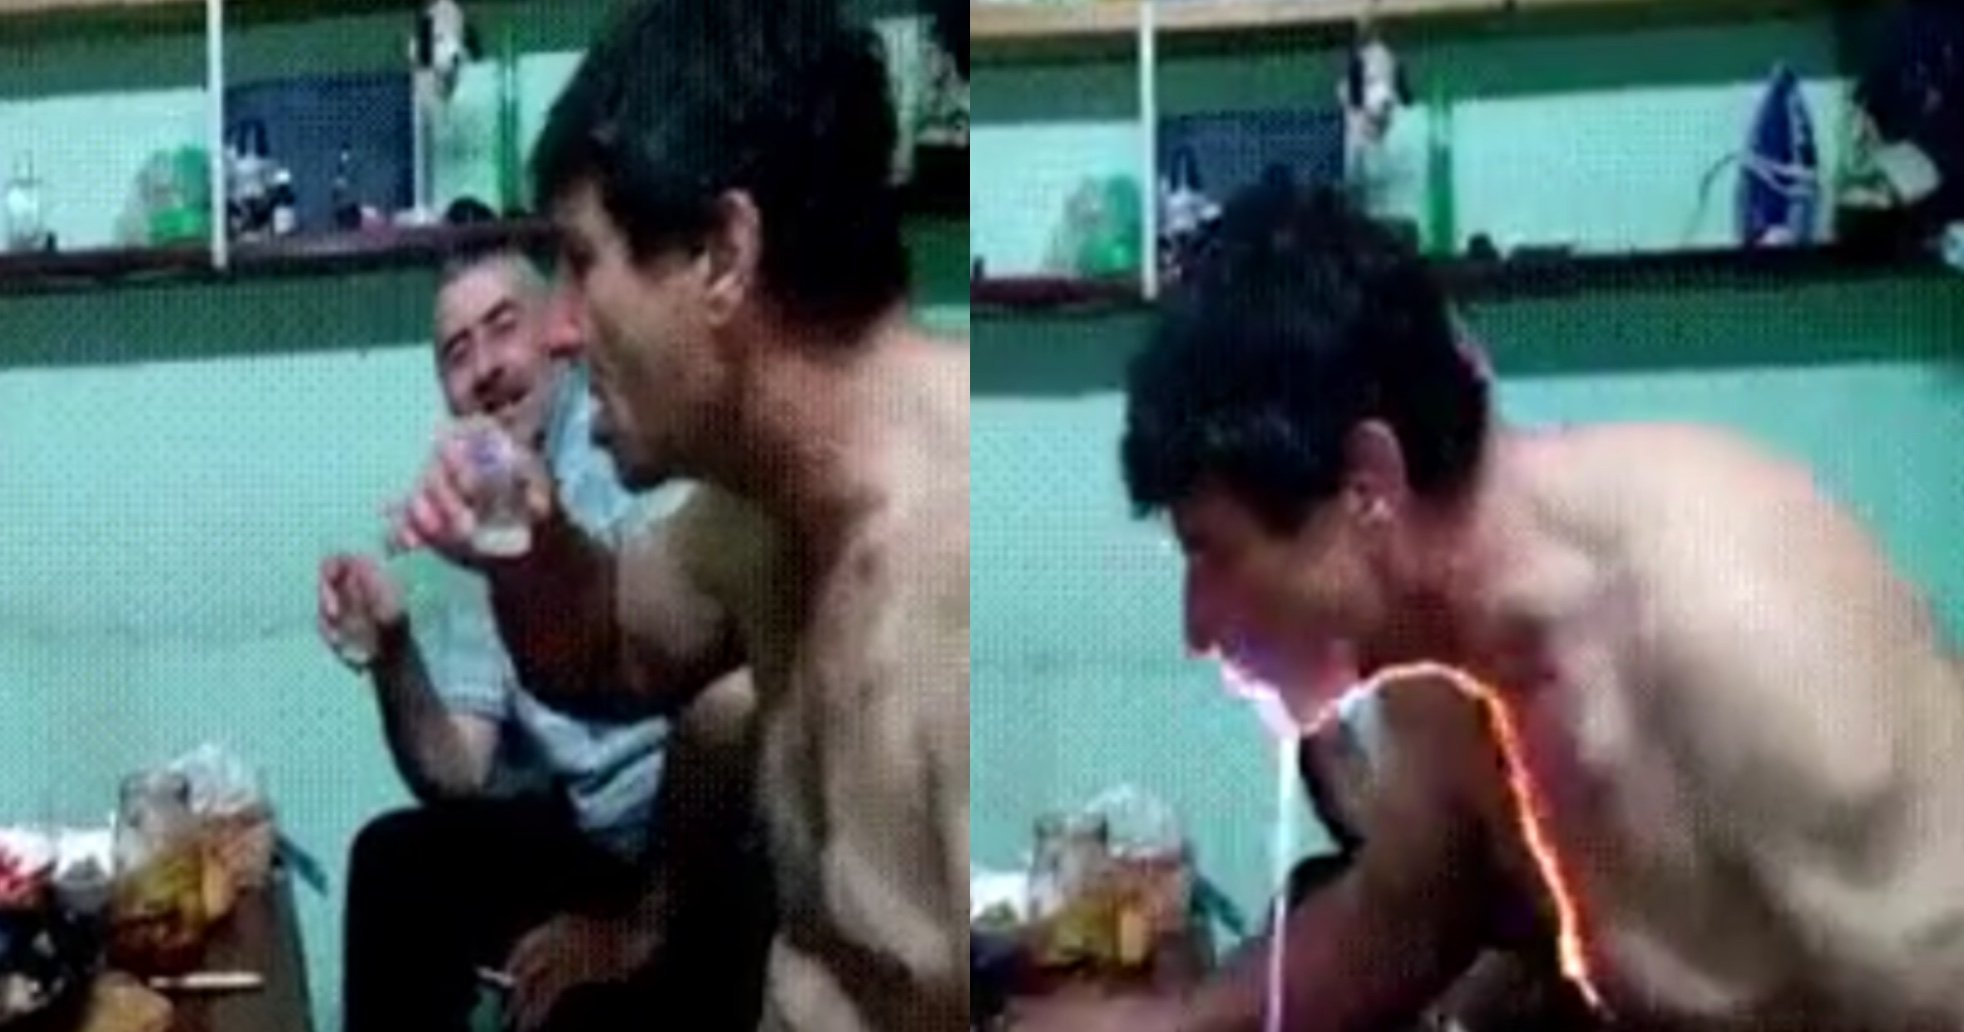 flaming.jpg?resize=1200,630 - A Video Of A Man's Throat Burning After Drinking A 96-Percent Alcohol Goes Viral